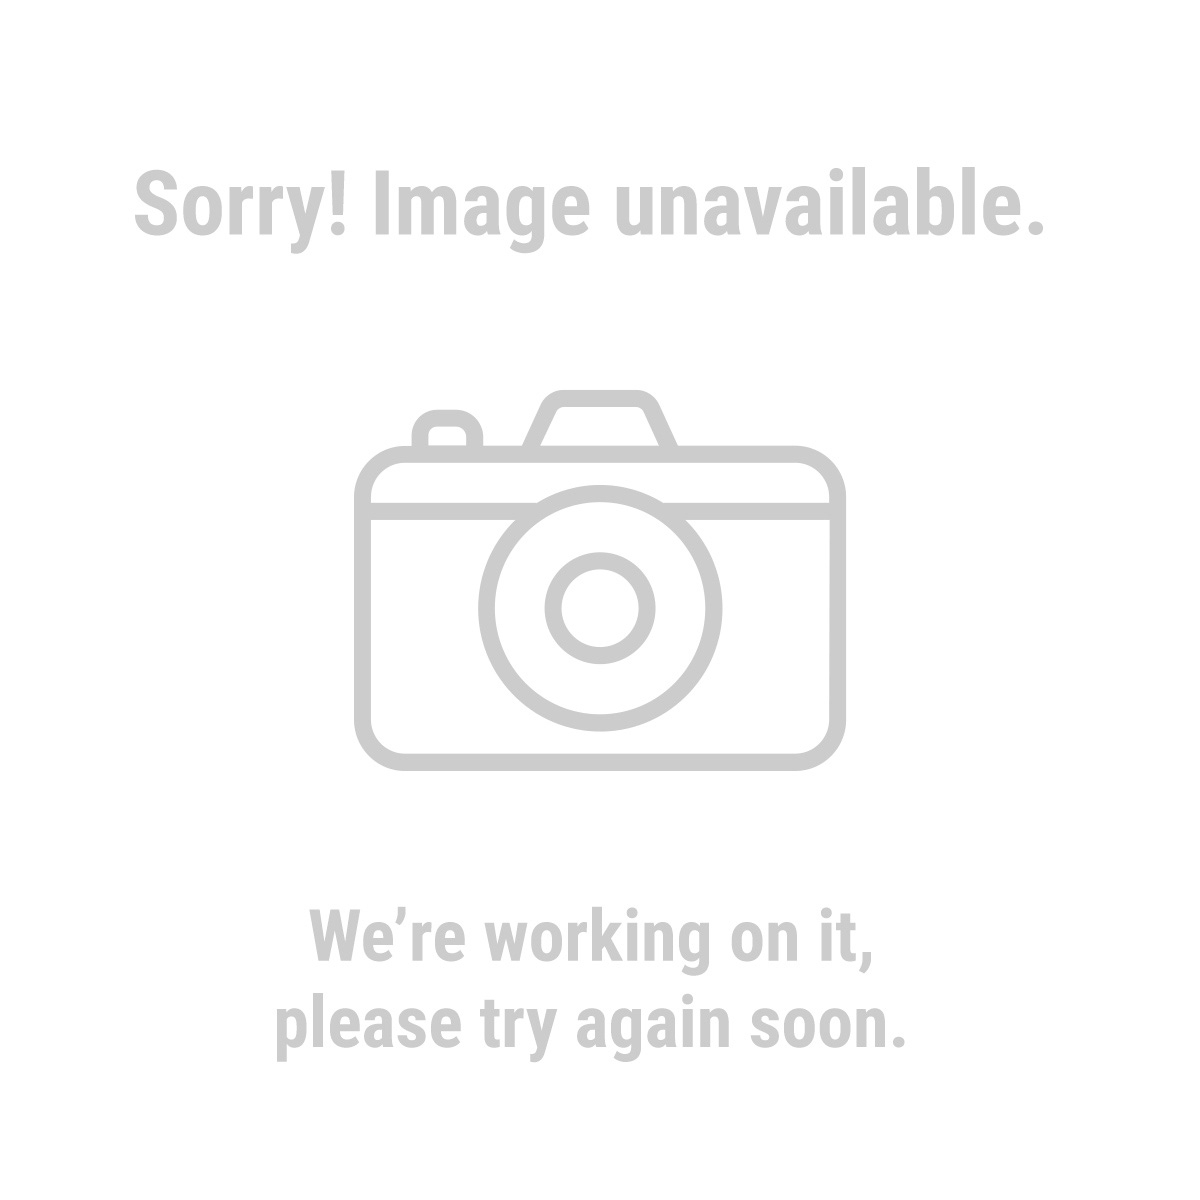 67259 5 Piece Buffing and Polishing Kit